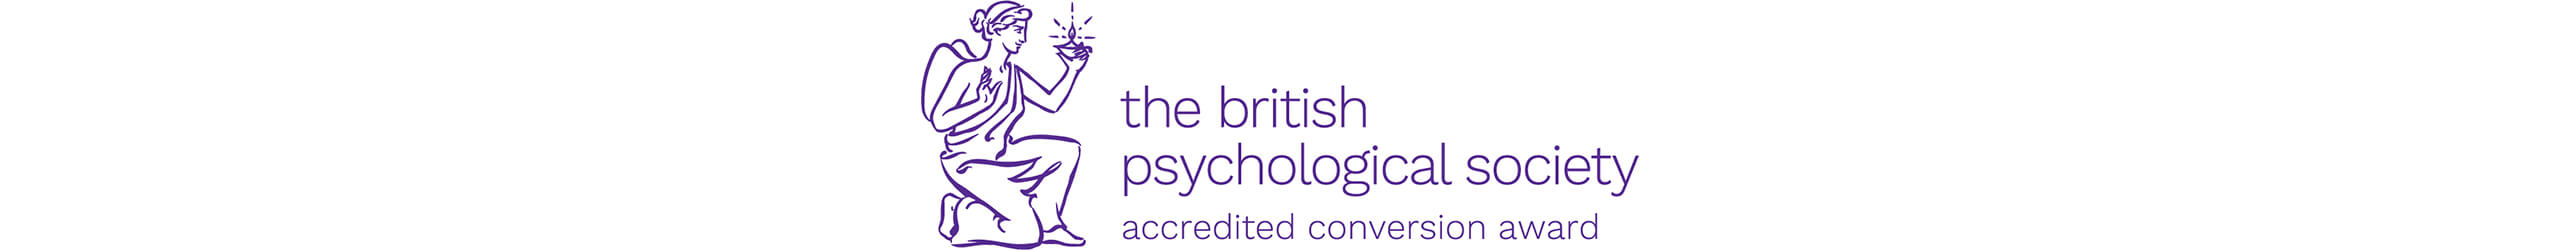 The British Psychological Society Accredited Conversion Award logo